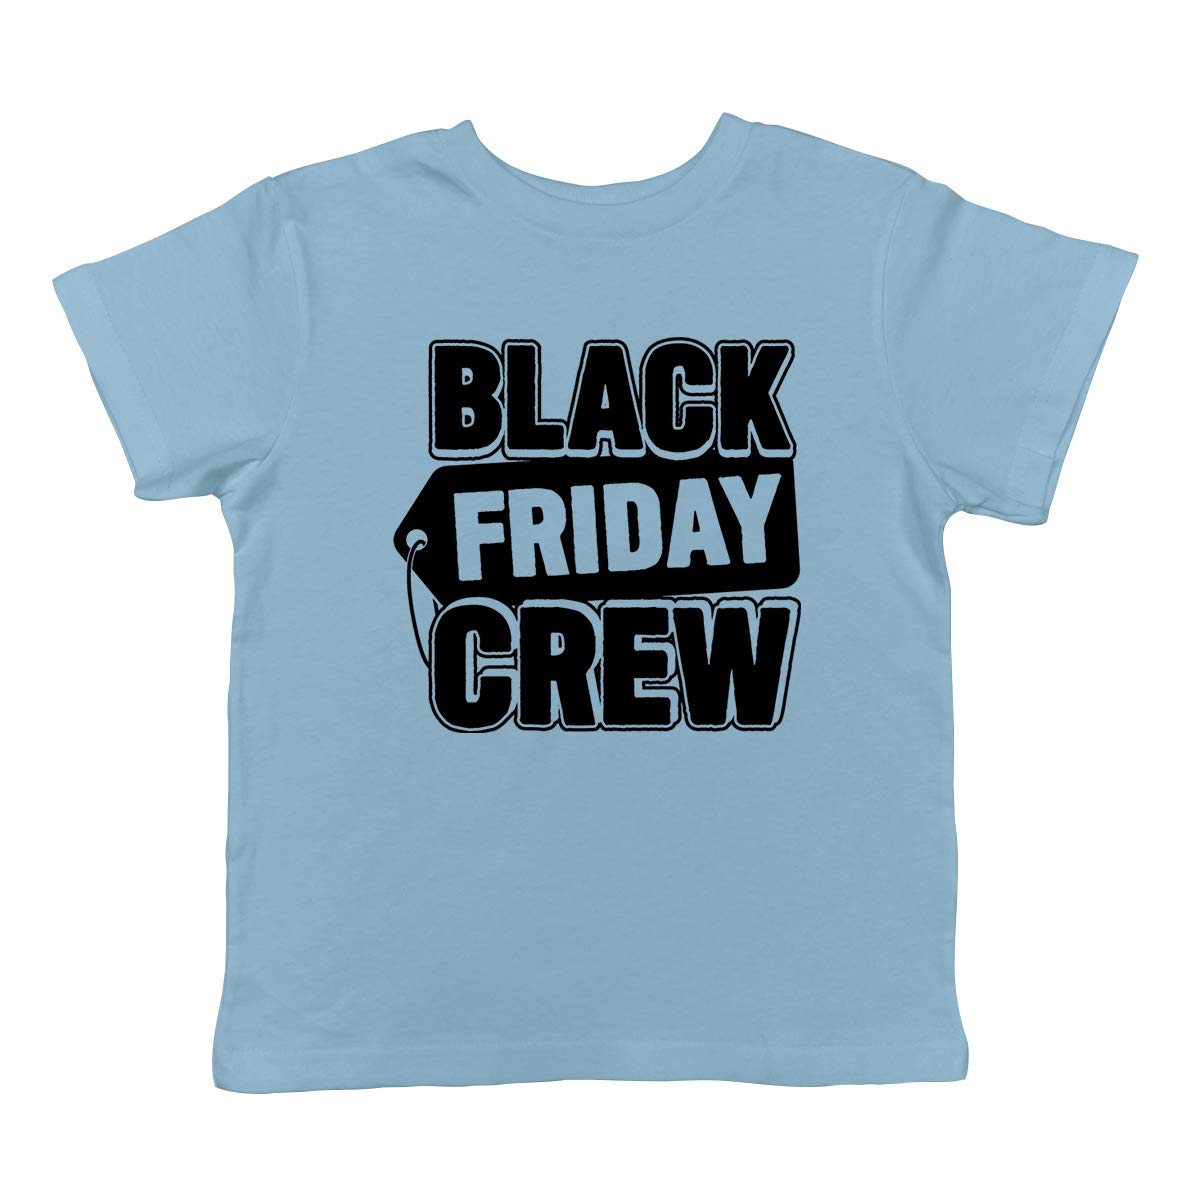 SpiritForged Apparel Black Friday Crew Infant T-Shirt